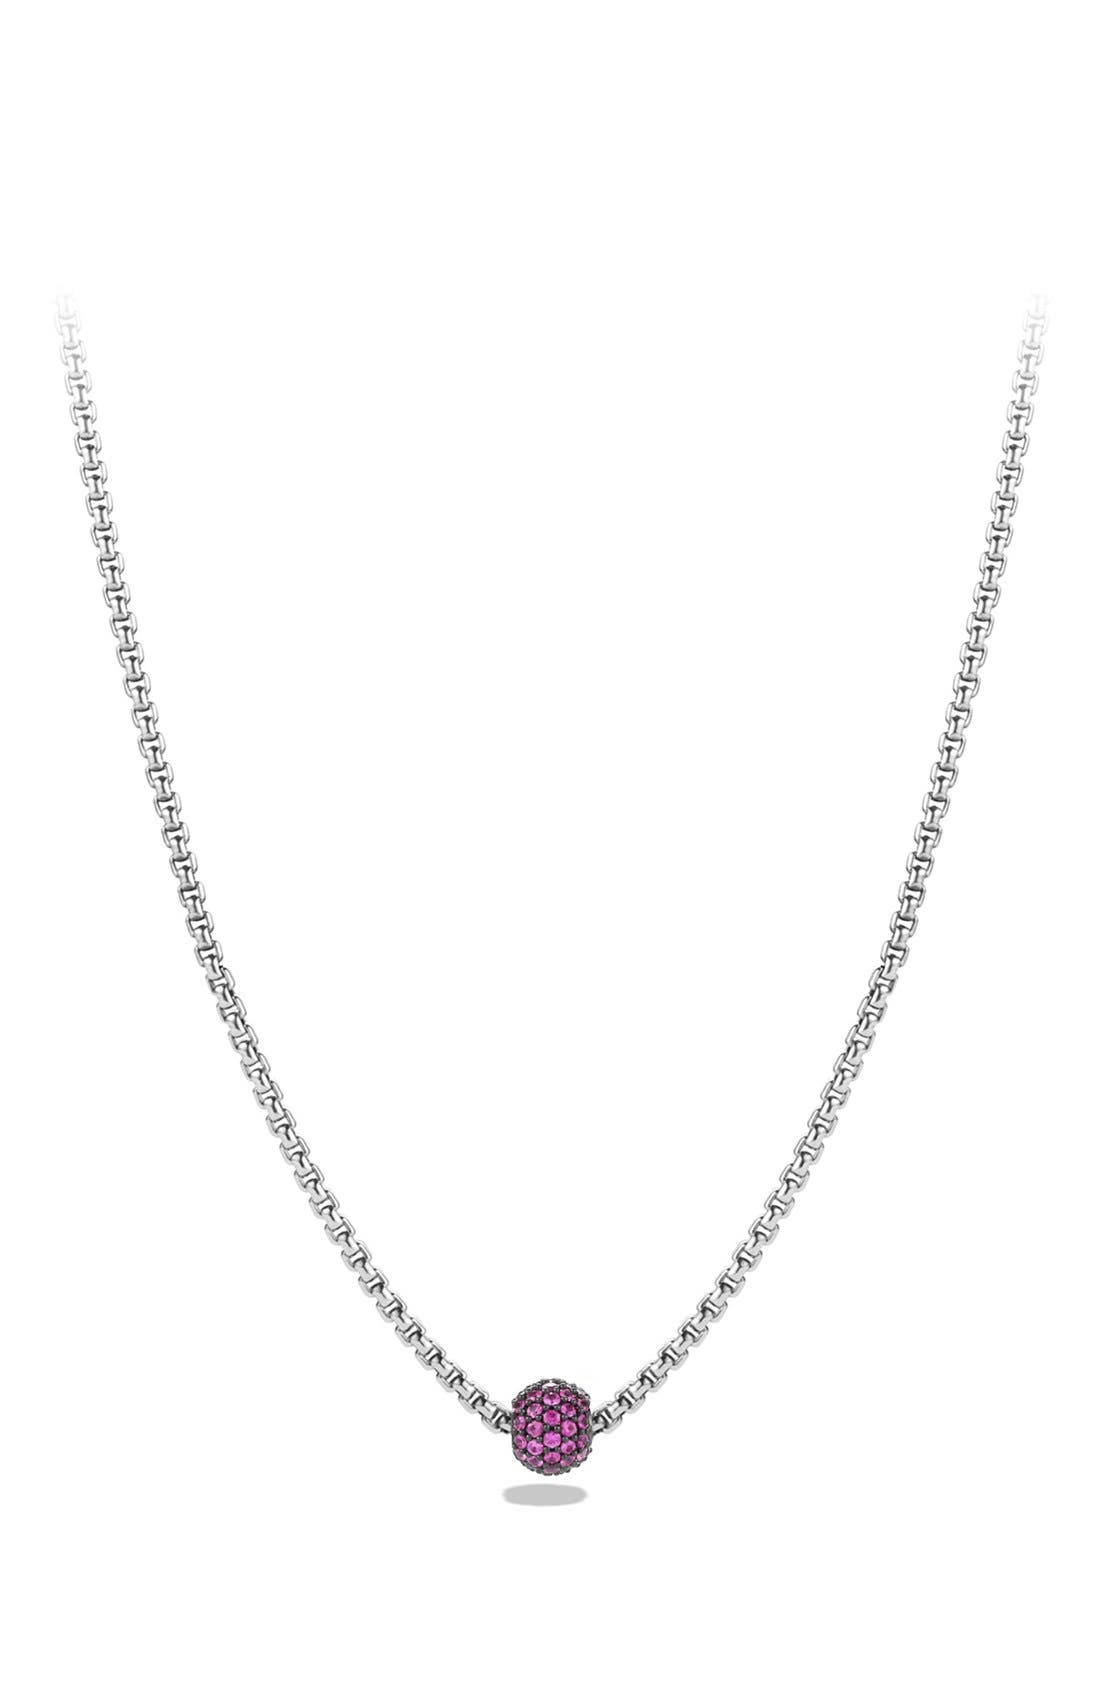 Alternate Image 1 Selected - David Yurman 'Metro' Petite Pavé Chain Necklace with Sapphires